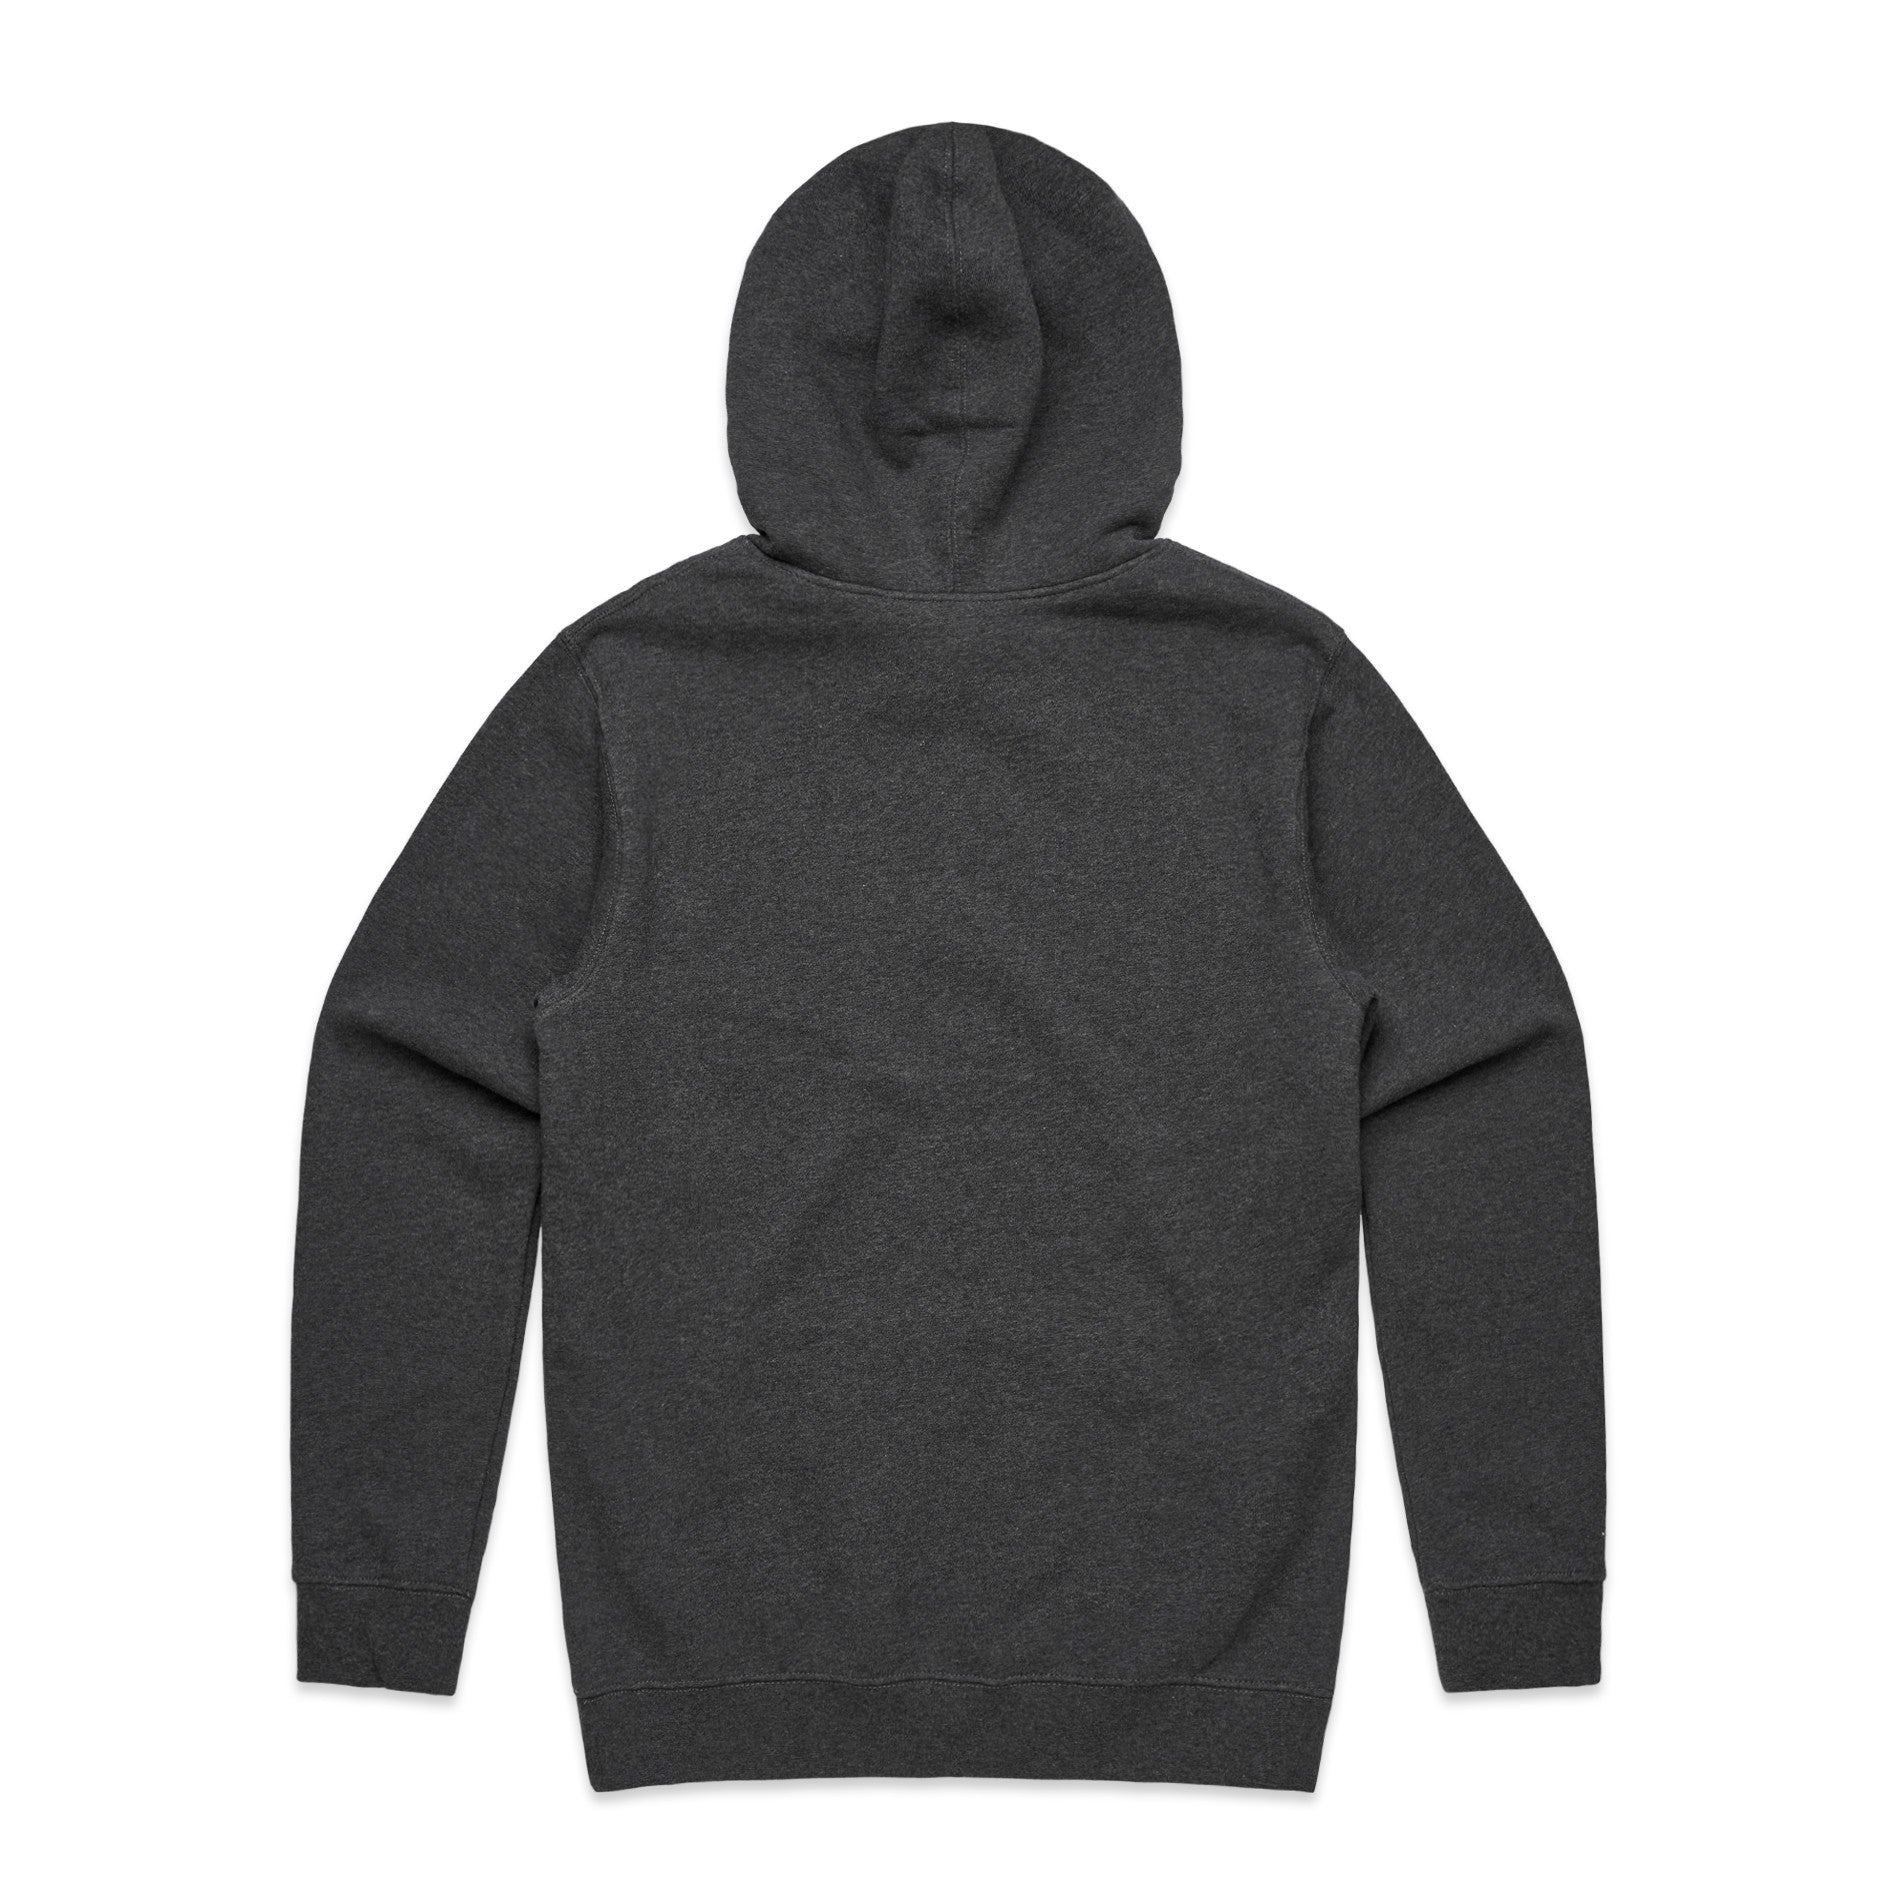 FUNDAMENTAL BADGE HOODIE - GREY MARLE